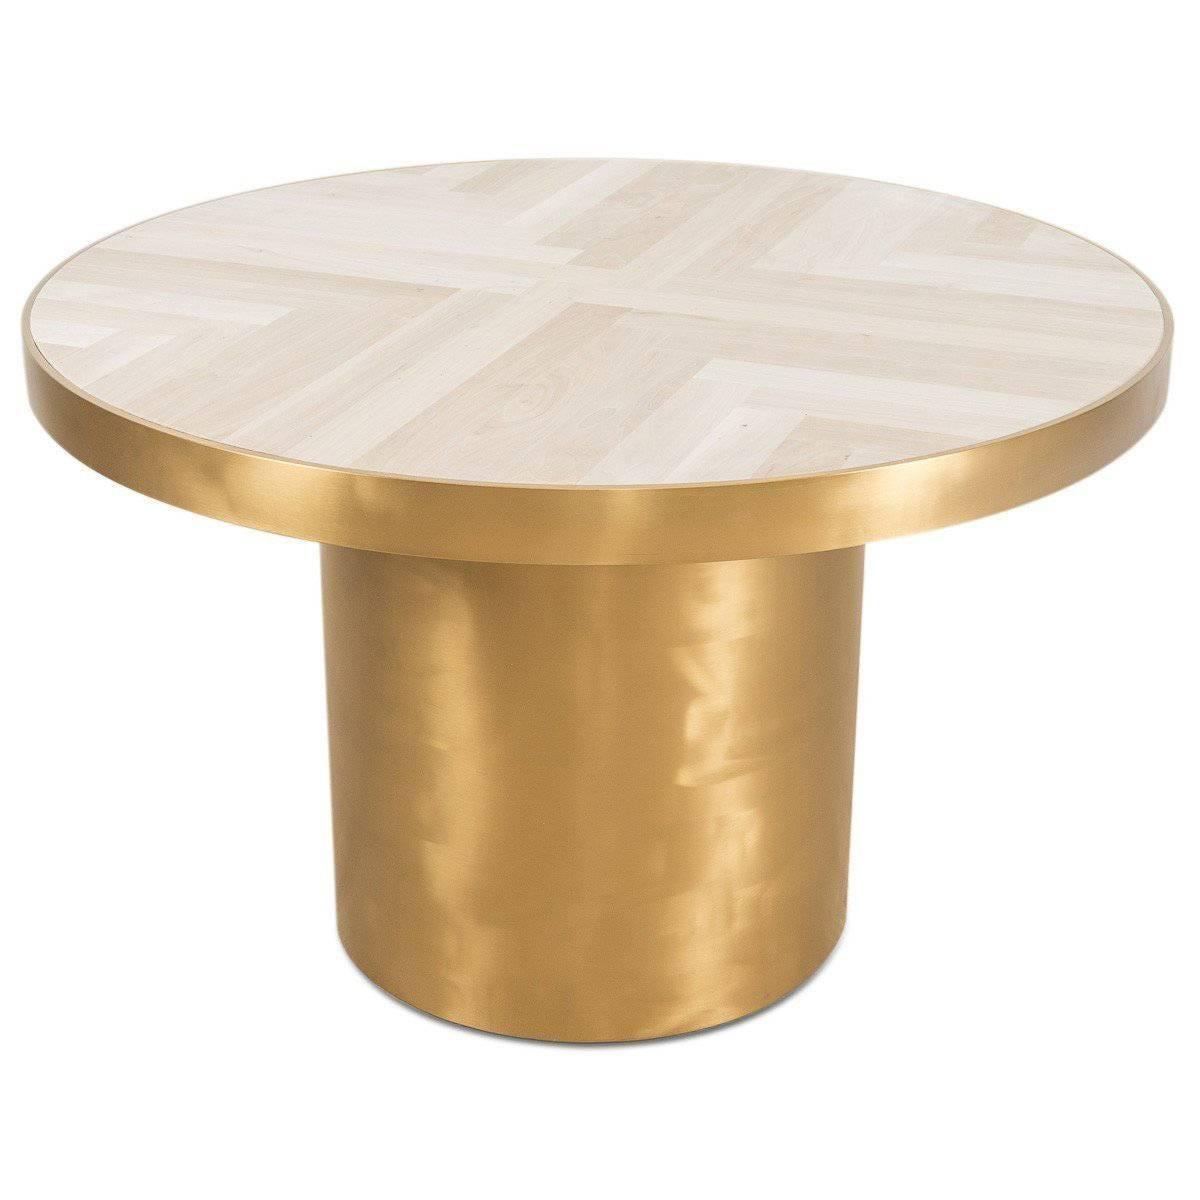 Modern Round Dining Table With Herringbone Pattern Walnut Top Brass Round  Base For Sale